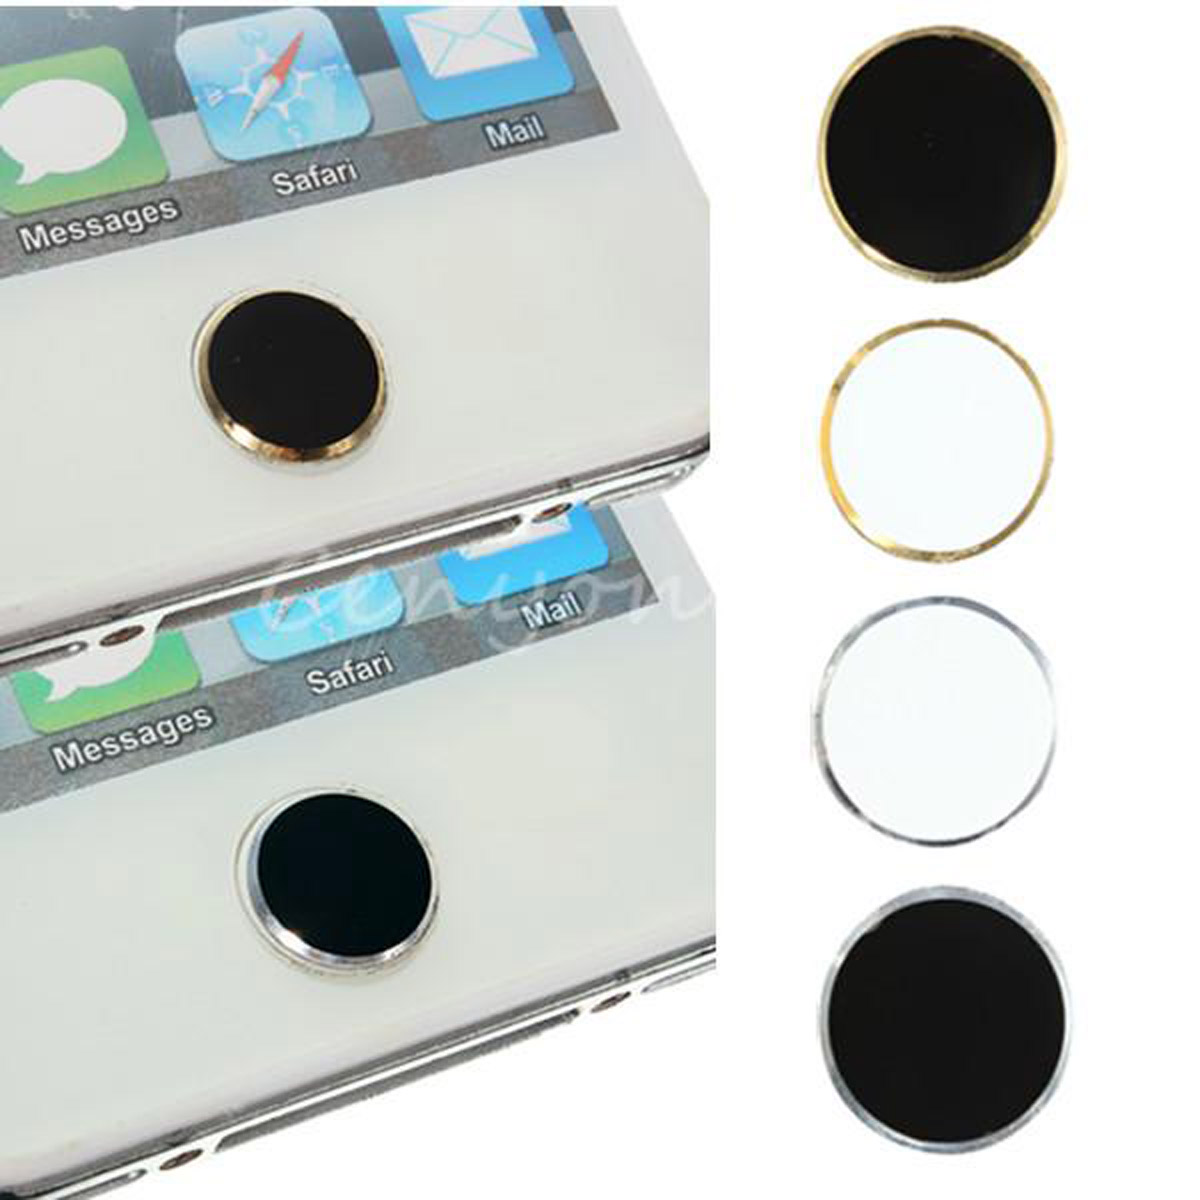 4 types aluminium home button sticker metal for apple iphone ipod touch ipad us ebay. Black Bedroom Furniture Sets. Home Design Ideas